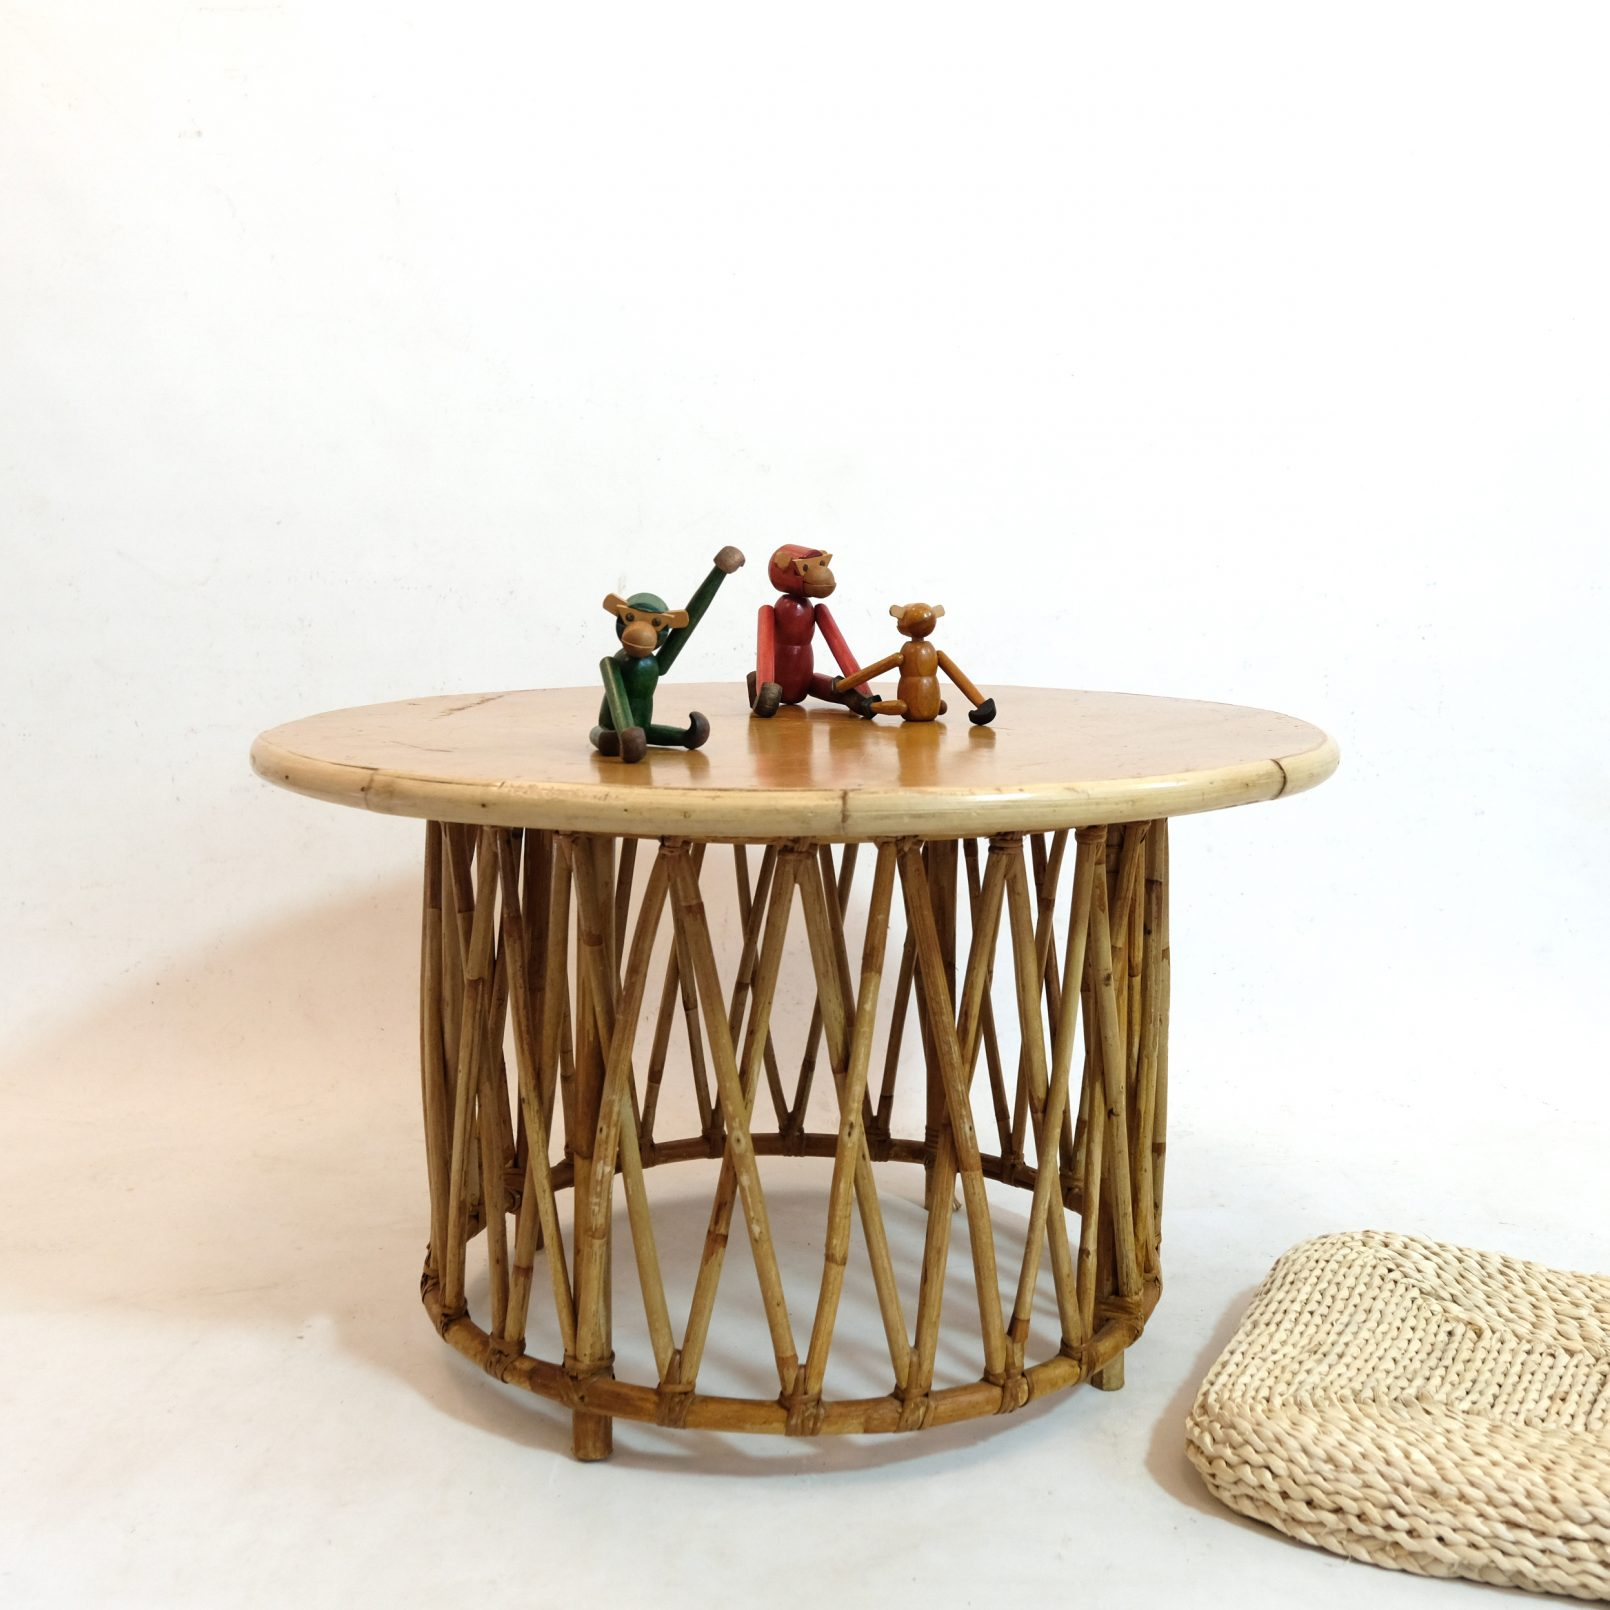 French rattan coffee table from the sixties.